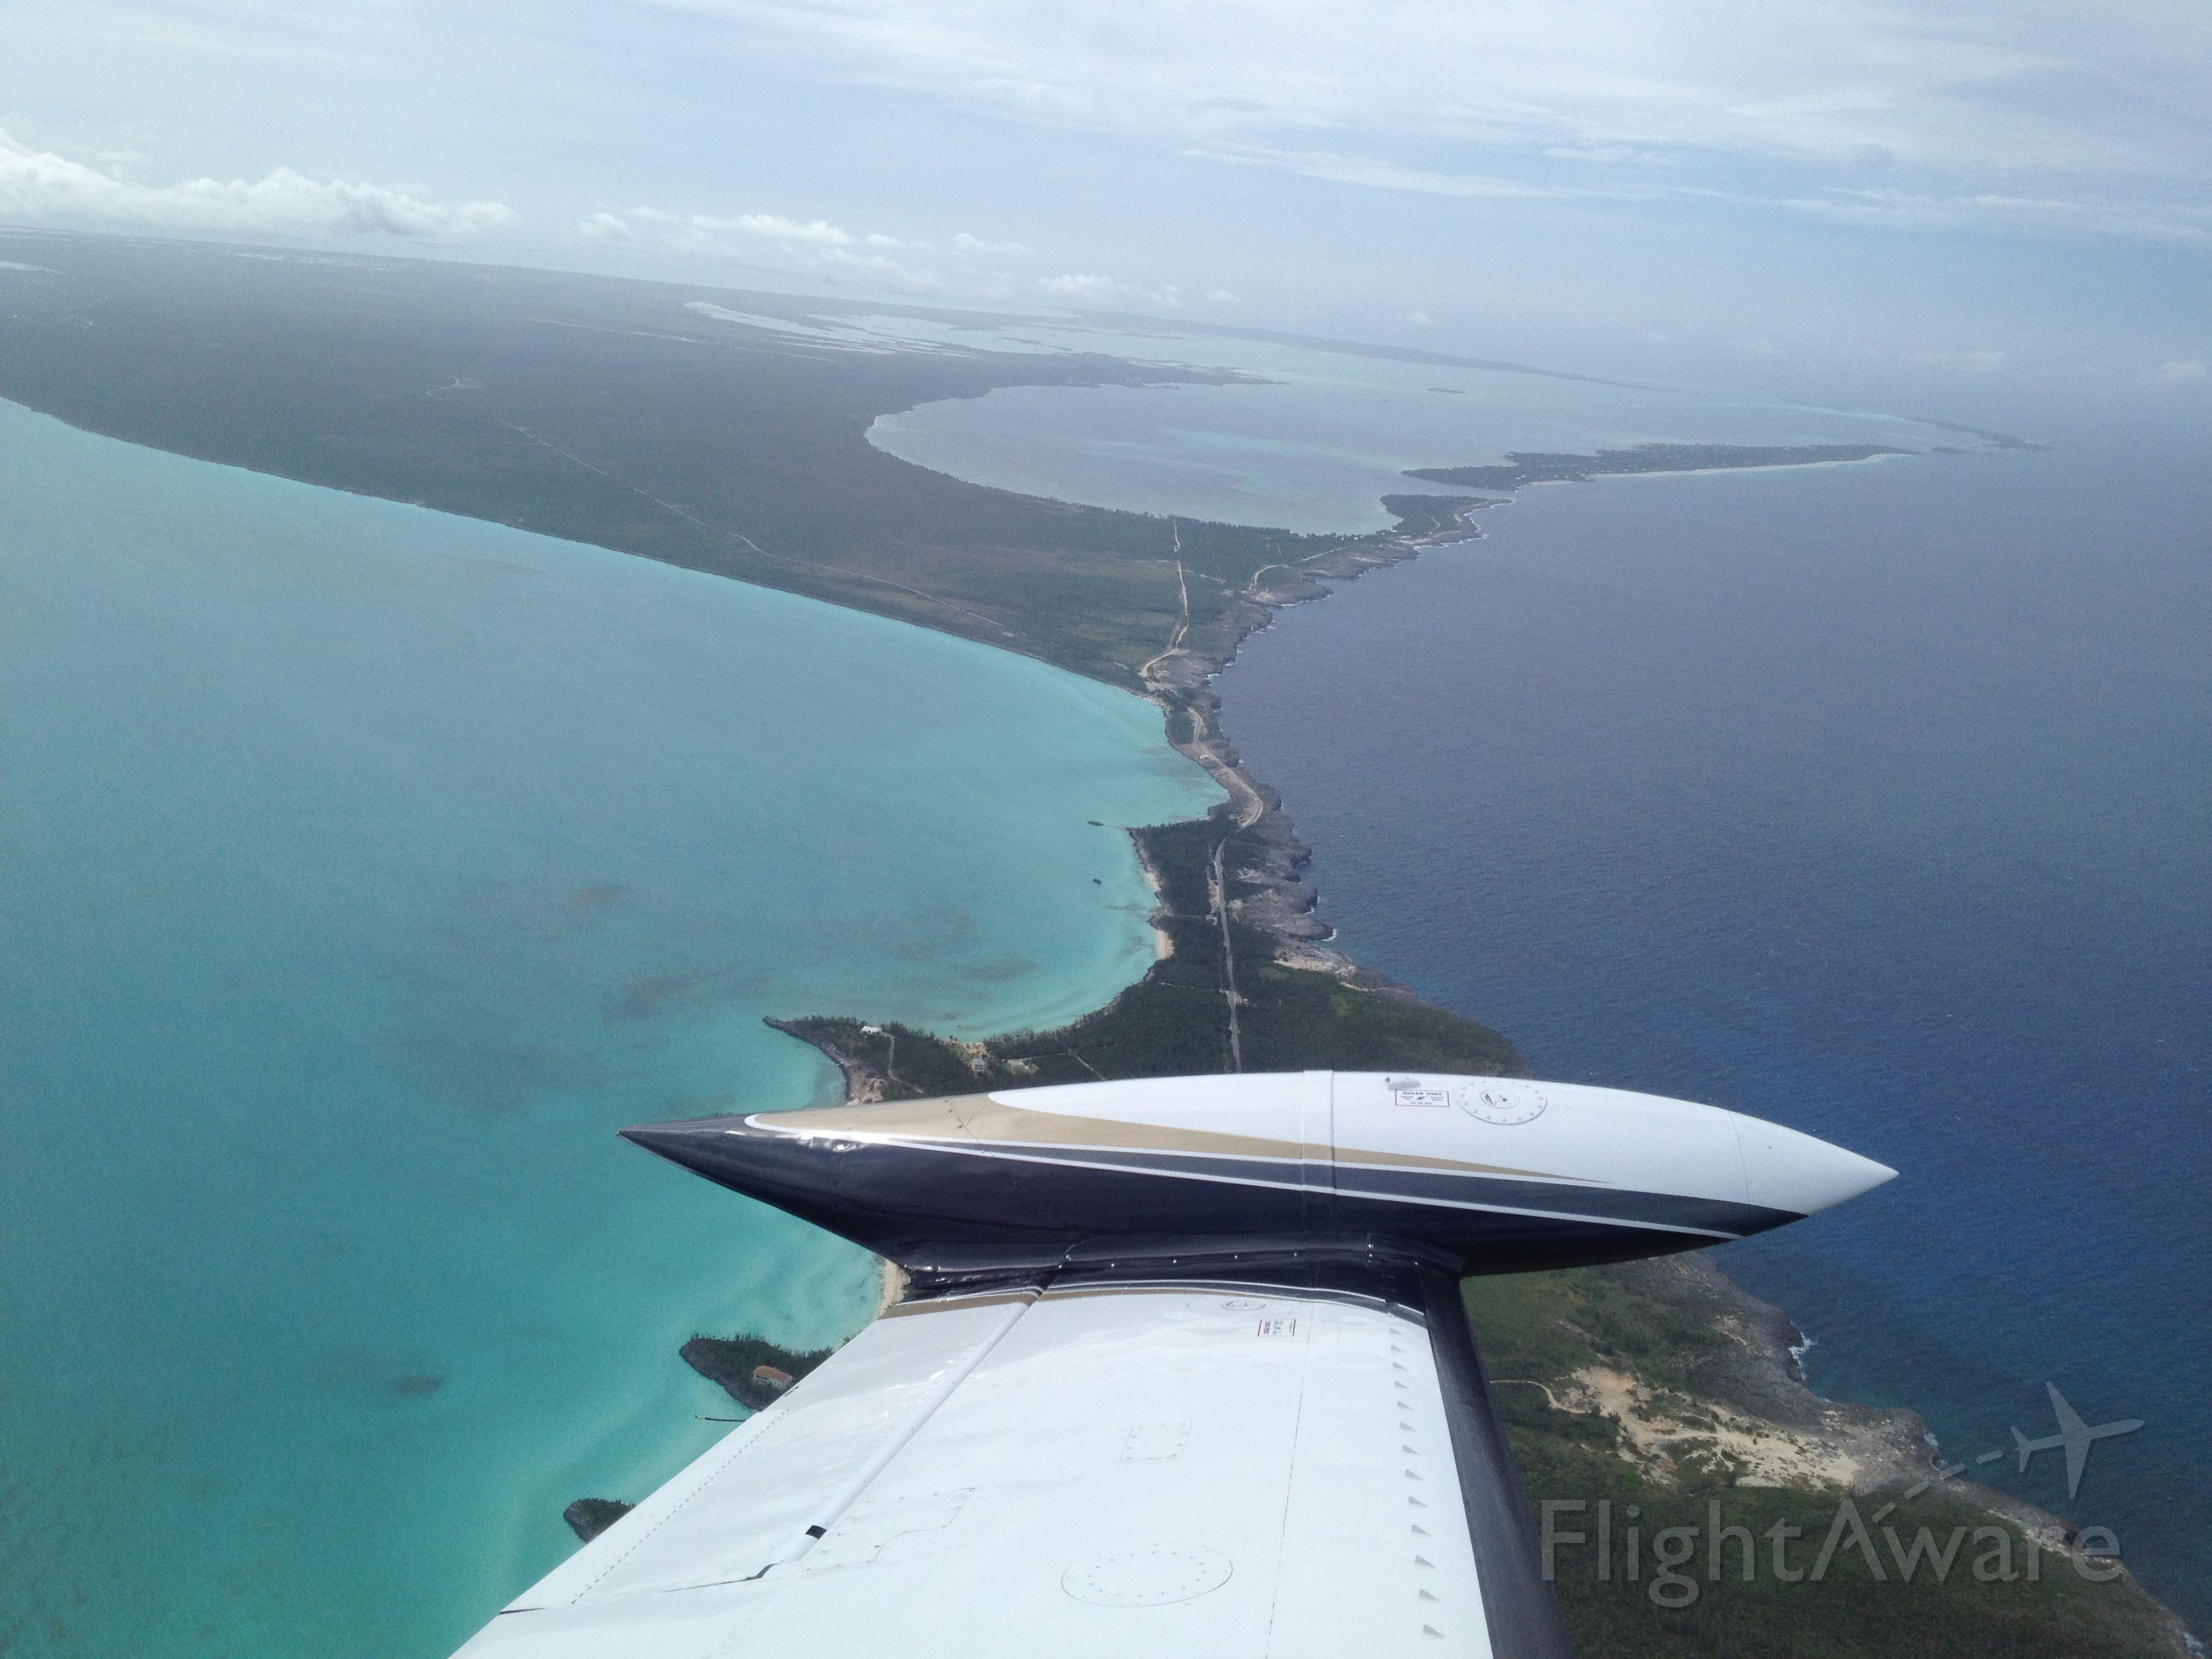 Cessna 340 (N200GC) - In route to Governors Harbor (MYEM) flying over the Glass Bridge on Eleuthera Island that Separates the Caribbean from the Atlantic